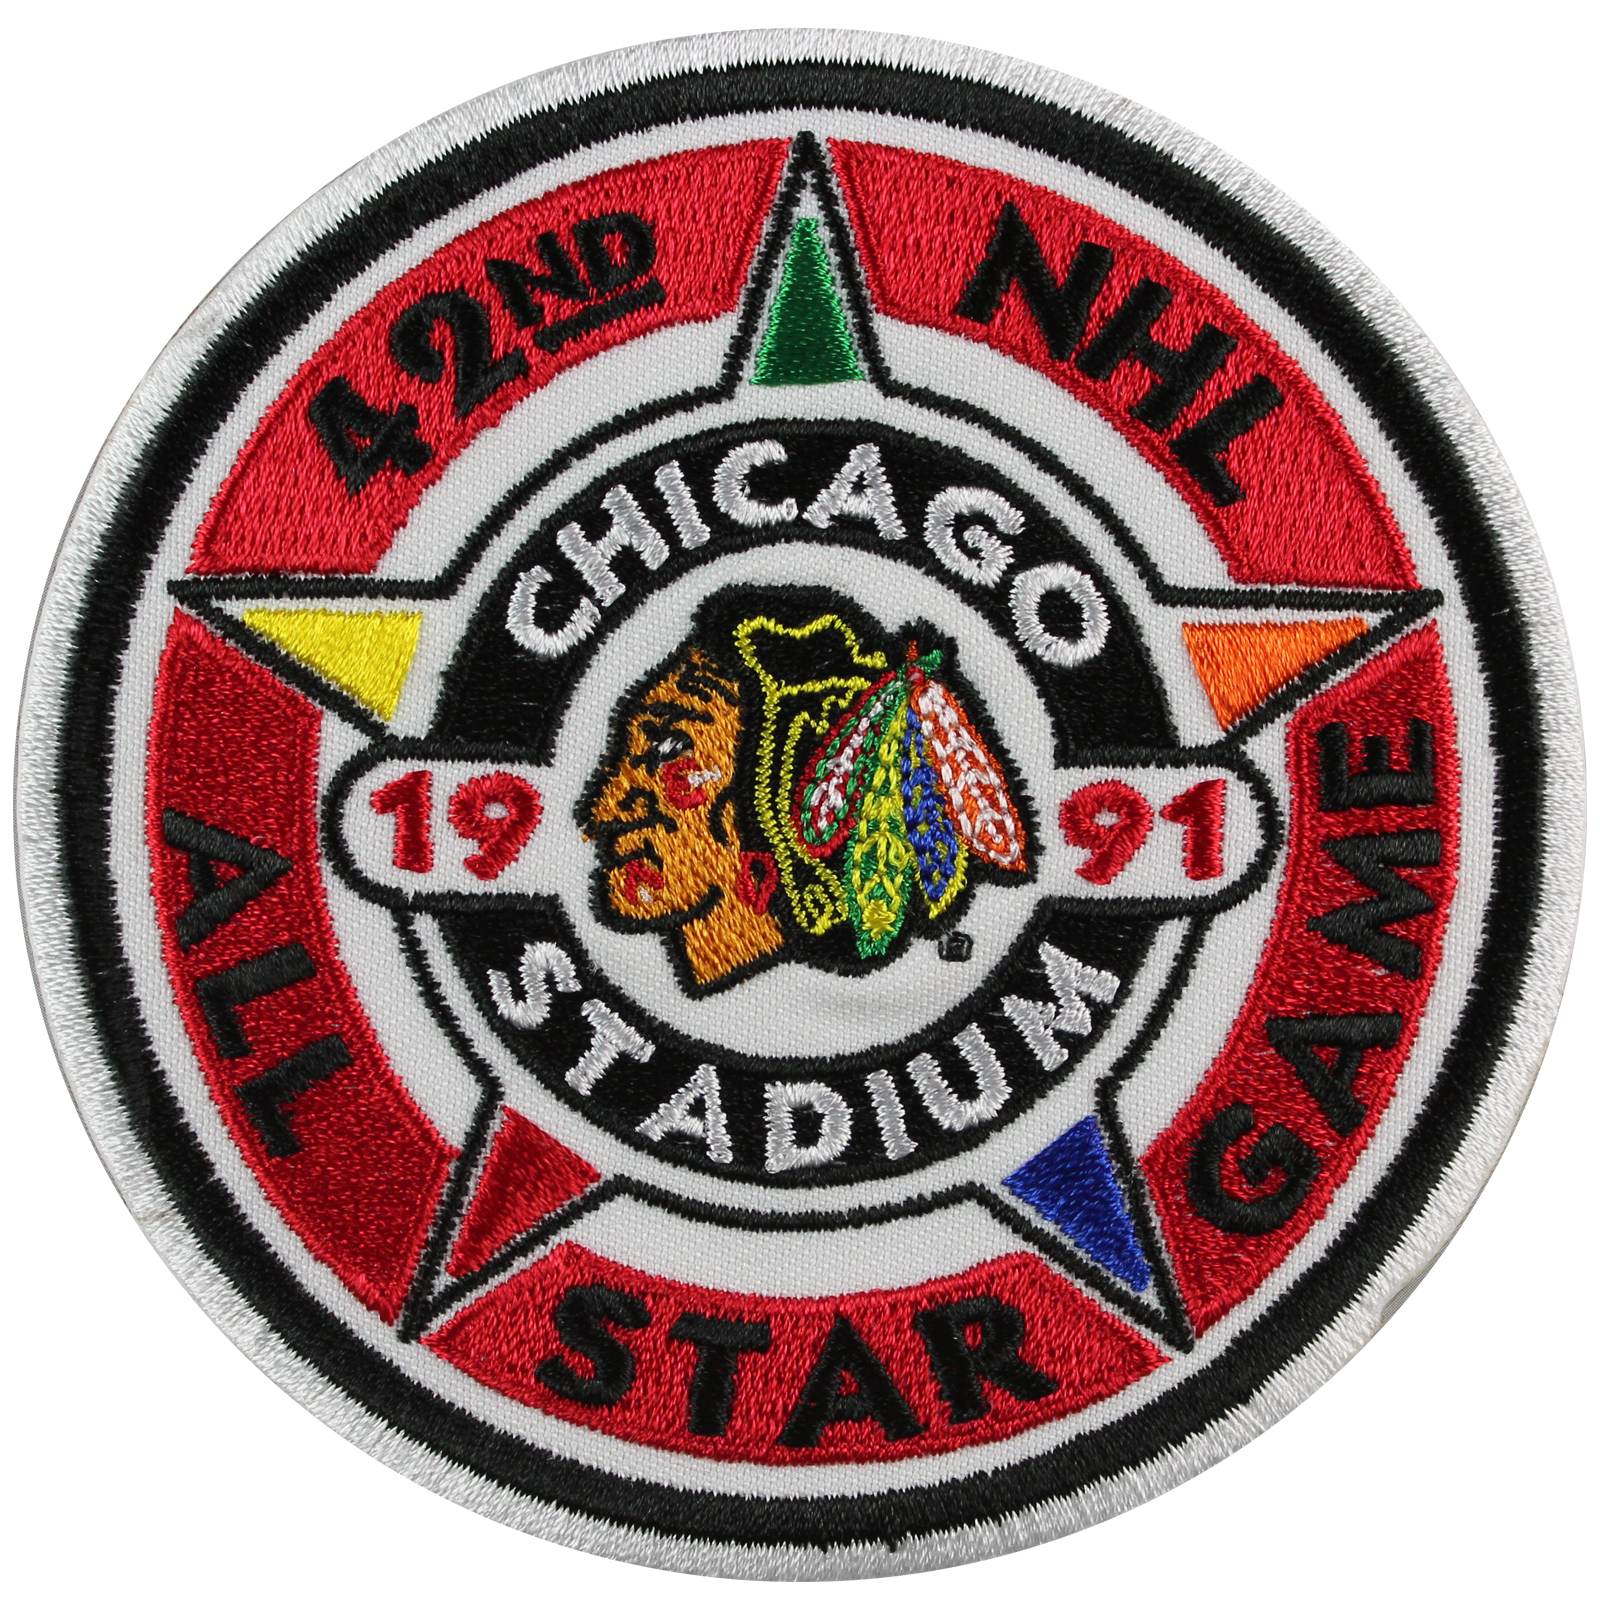 1991 NHL Hockey All Star Game Jersey Patch Chicago Blackhawks by